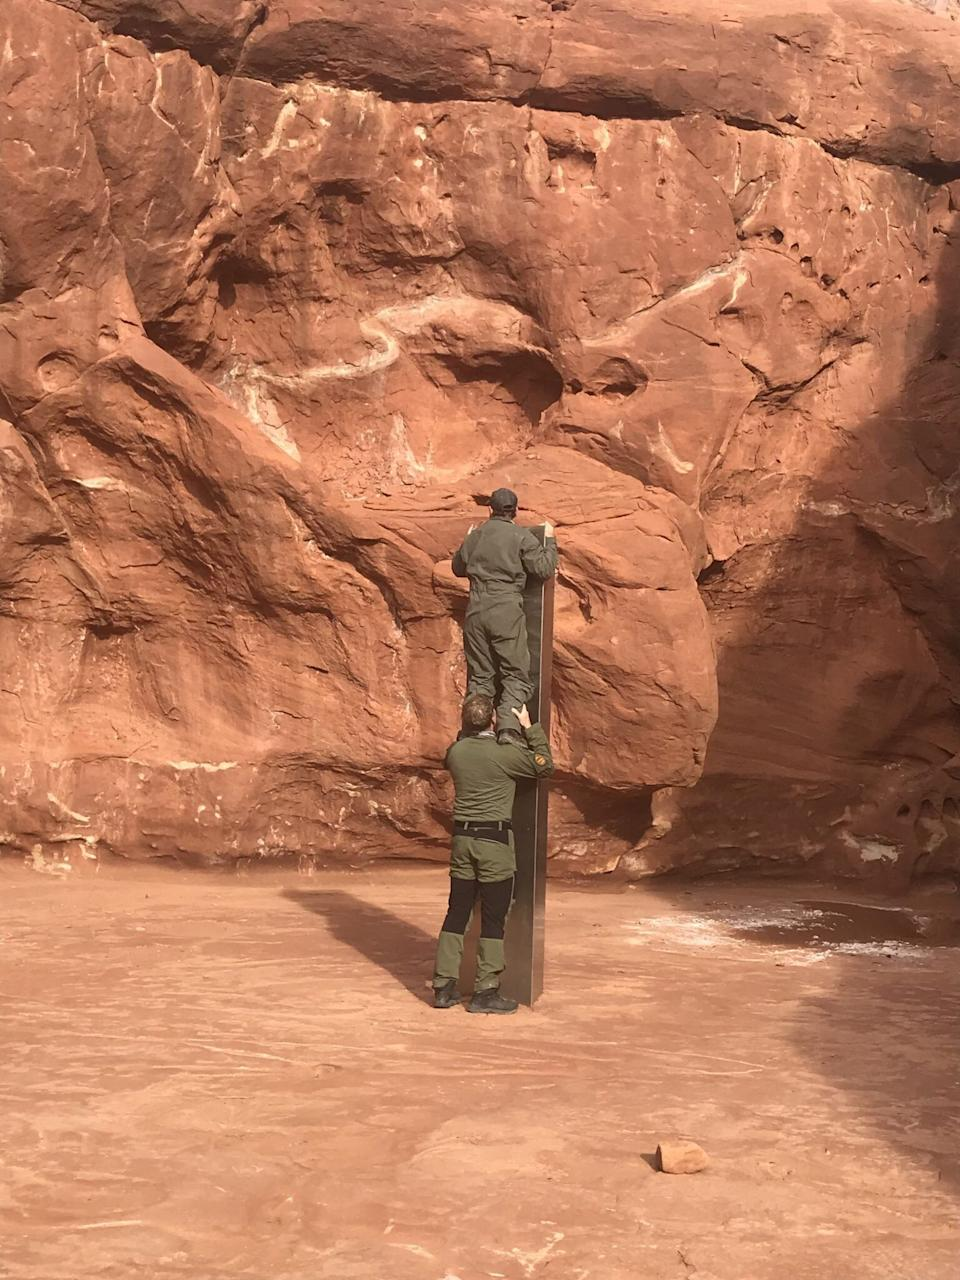 The monolith was discovered while officers were counting bighorn sheep from a helicopter. (Photo: Utah Department of Public Safety)